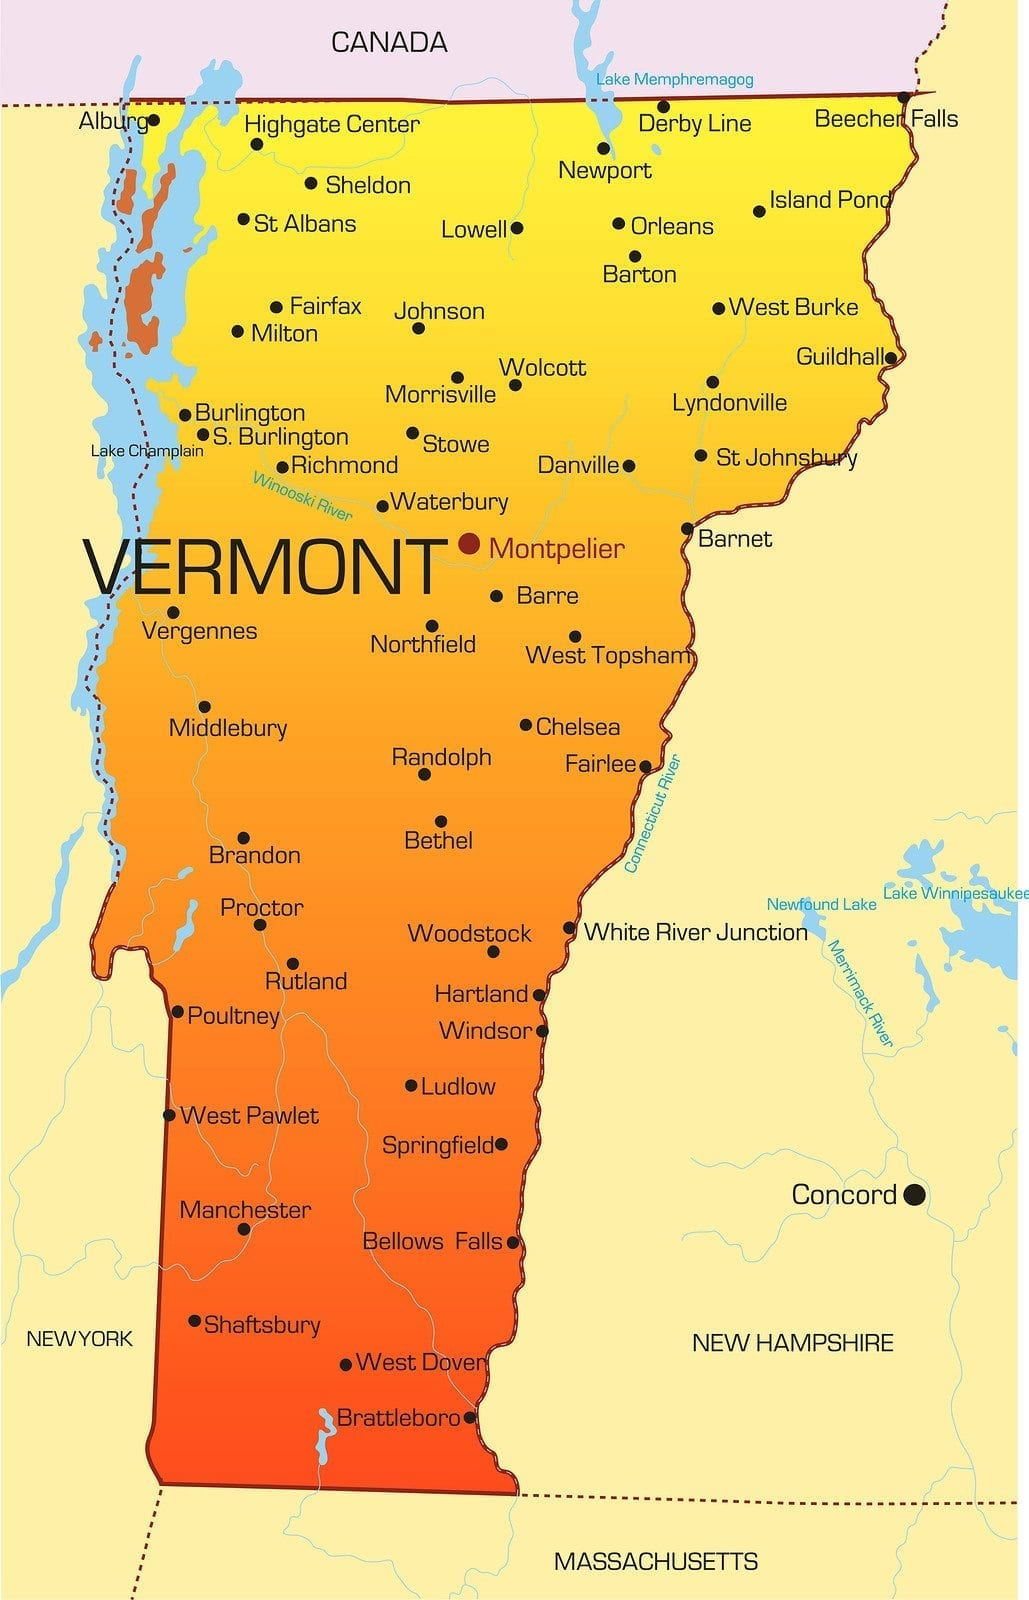 Vermont LPN Requirements and Training Programs